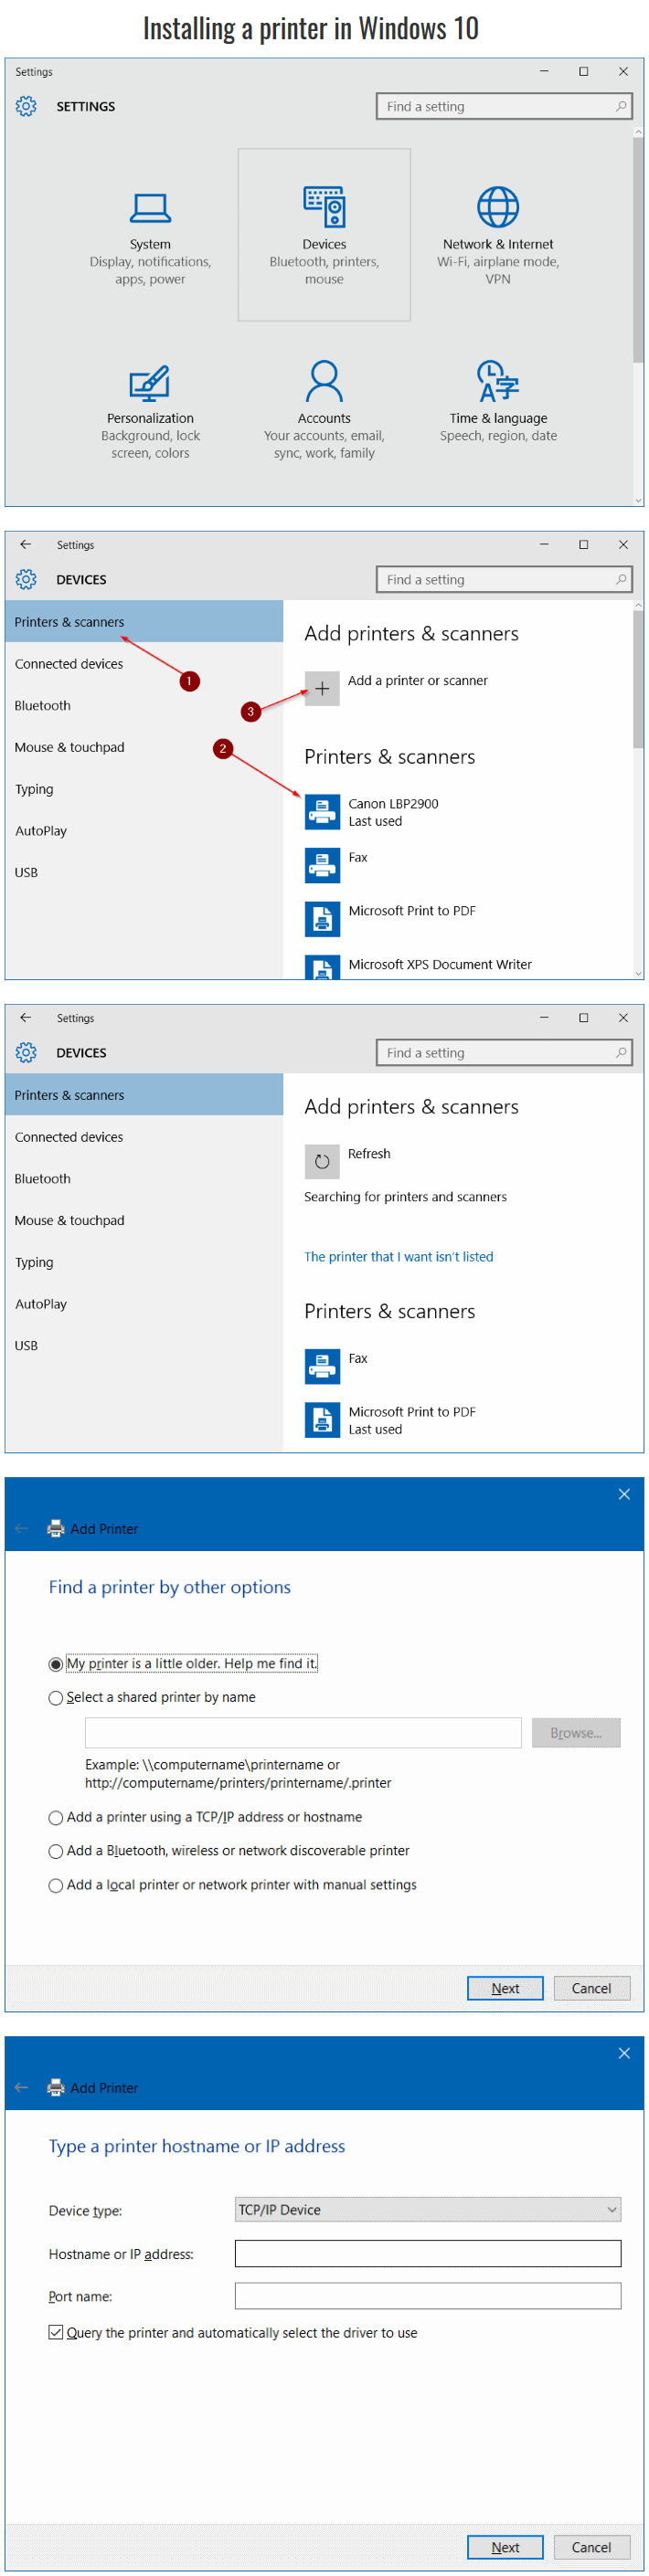 Install A Printer In Windows 10